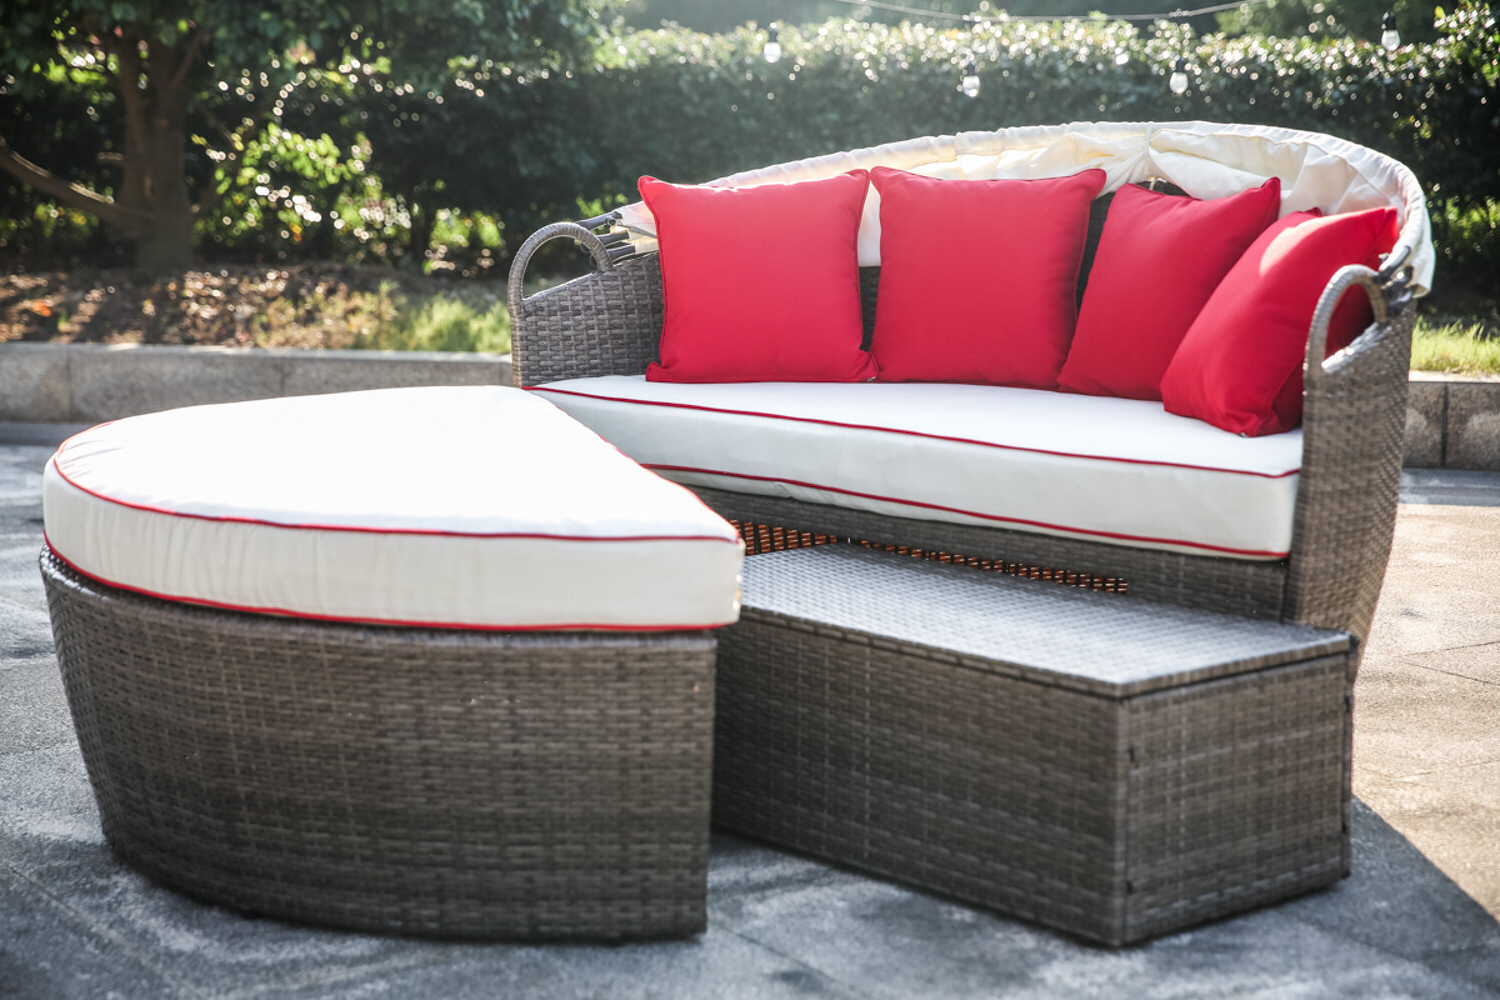 Fansler Patio Daybed With Cushions Within Most Up To Date Lavina Outdoor Patio Daybeds With Cushions (View 7 of 20)